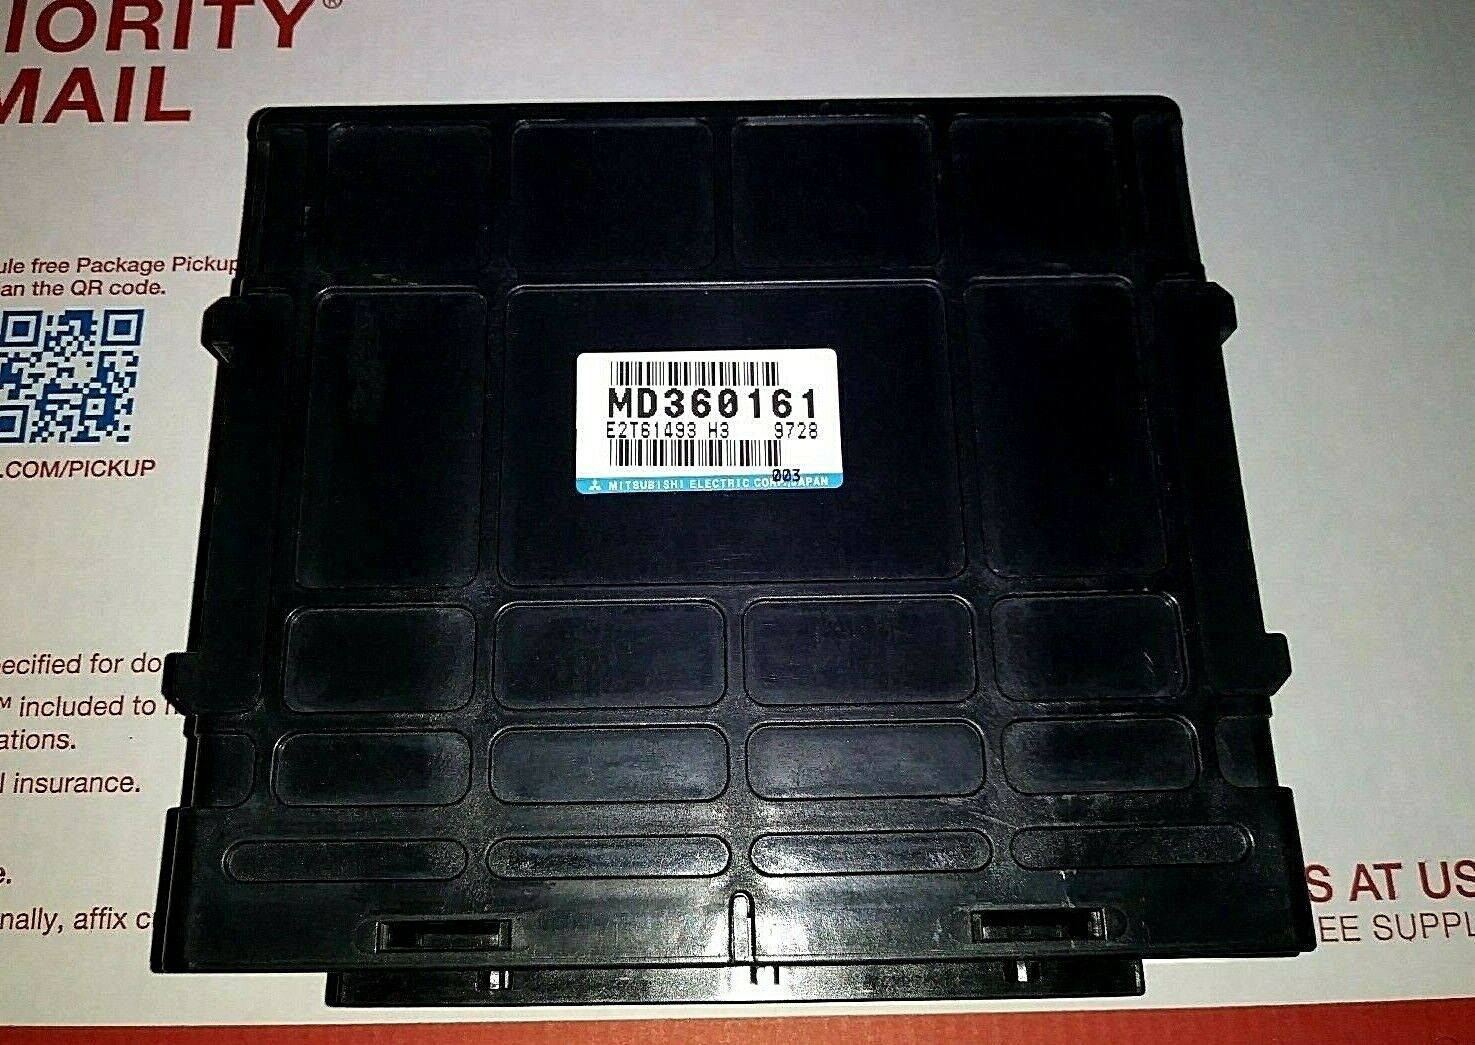 Used 1998 Mitsubishi 3000GT Computers and Cruise Control Parts for Sale